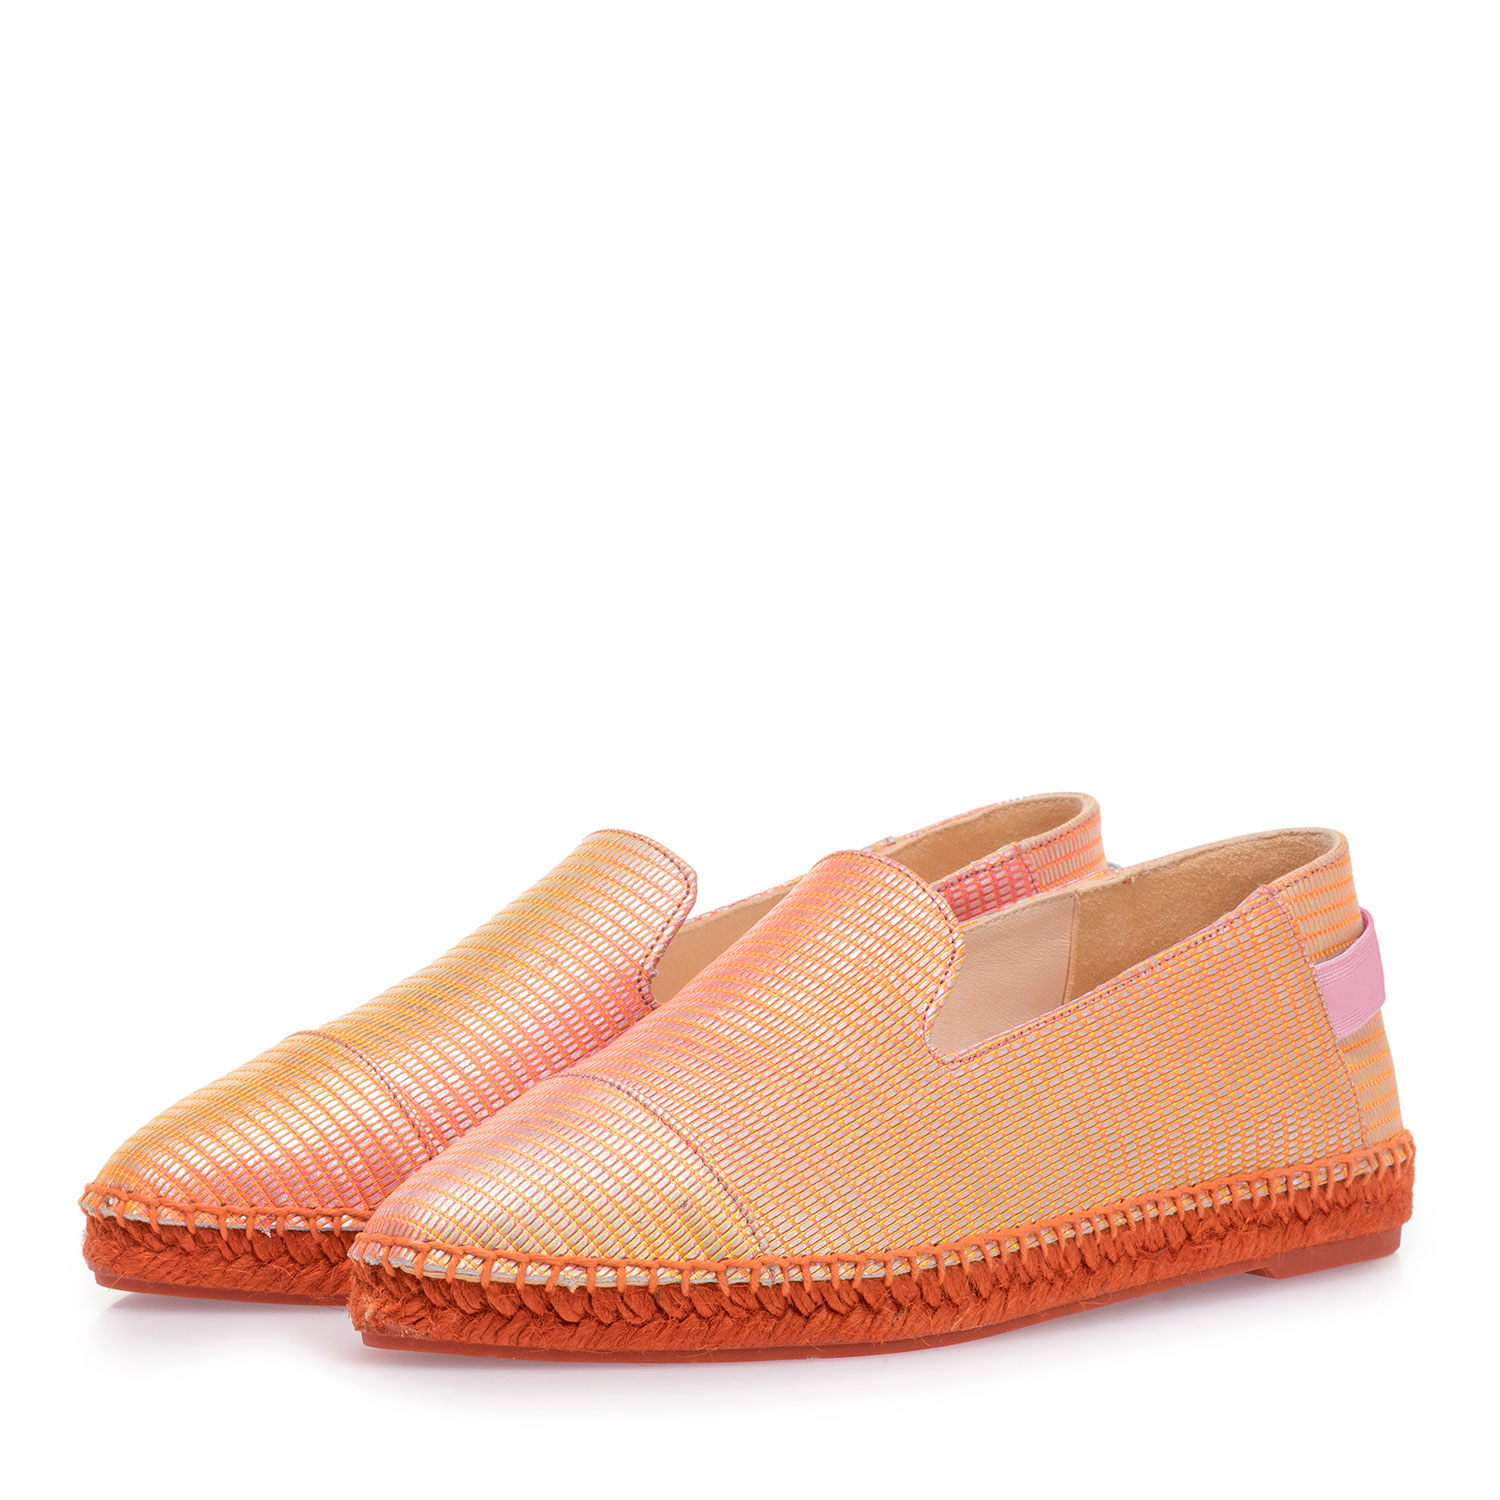 85420/08 - Orange leather espadrilles with metallic print